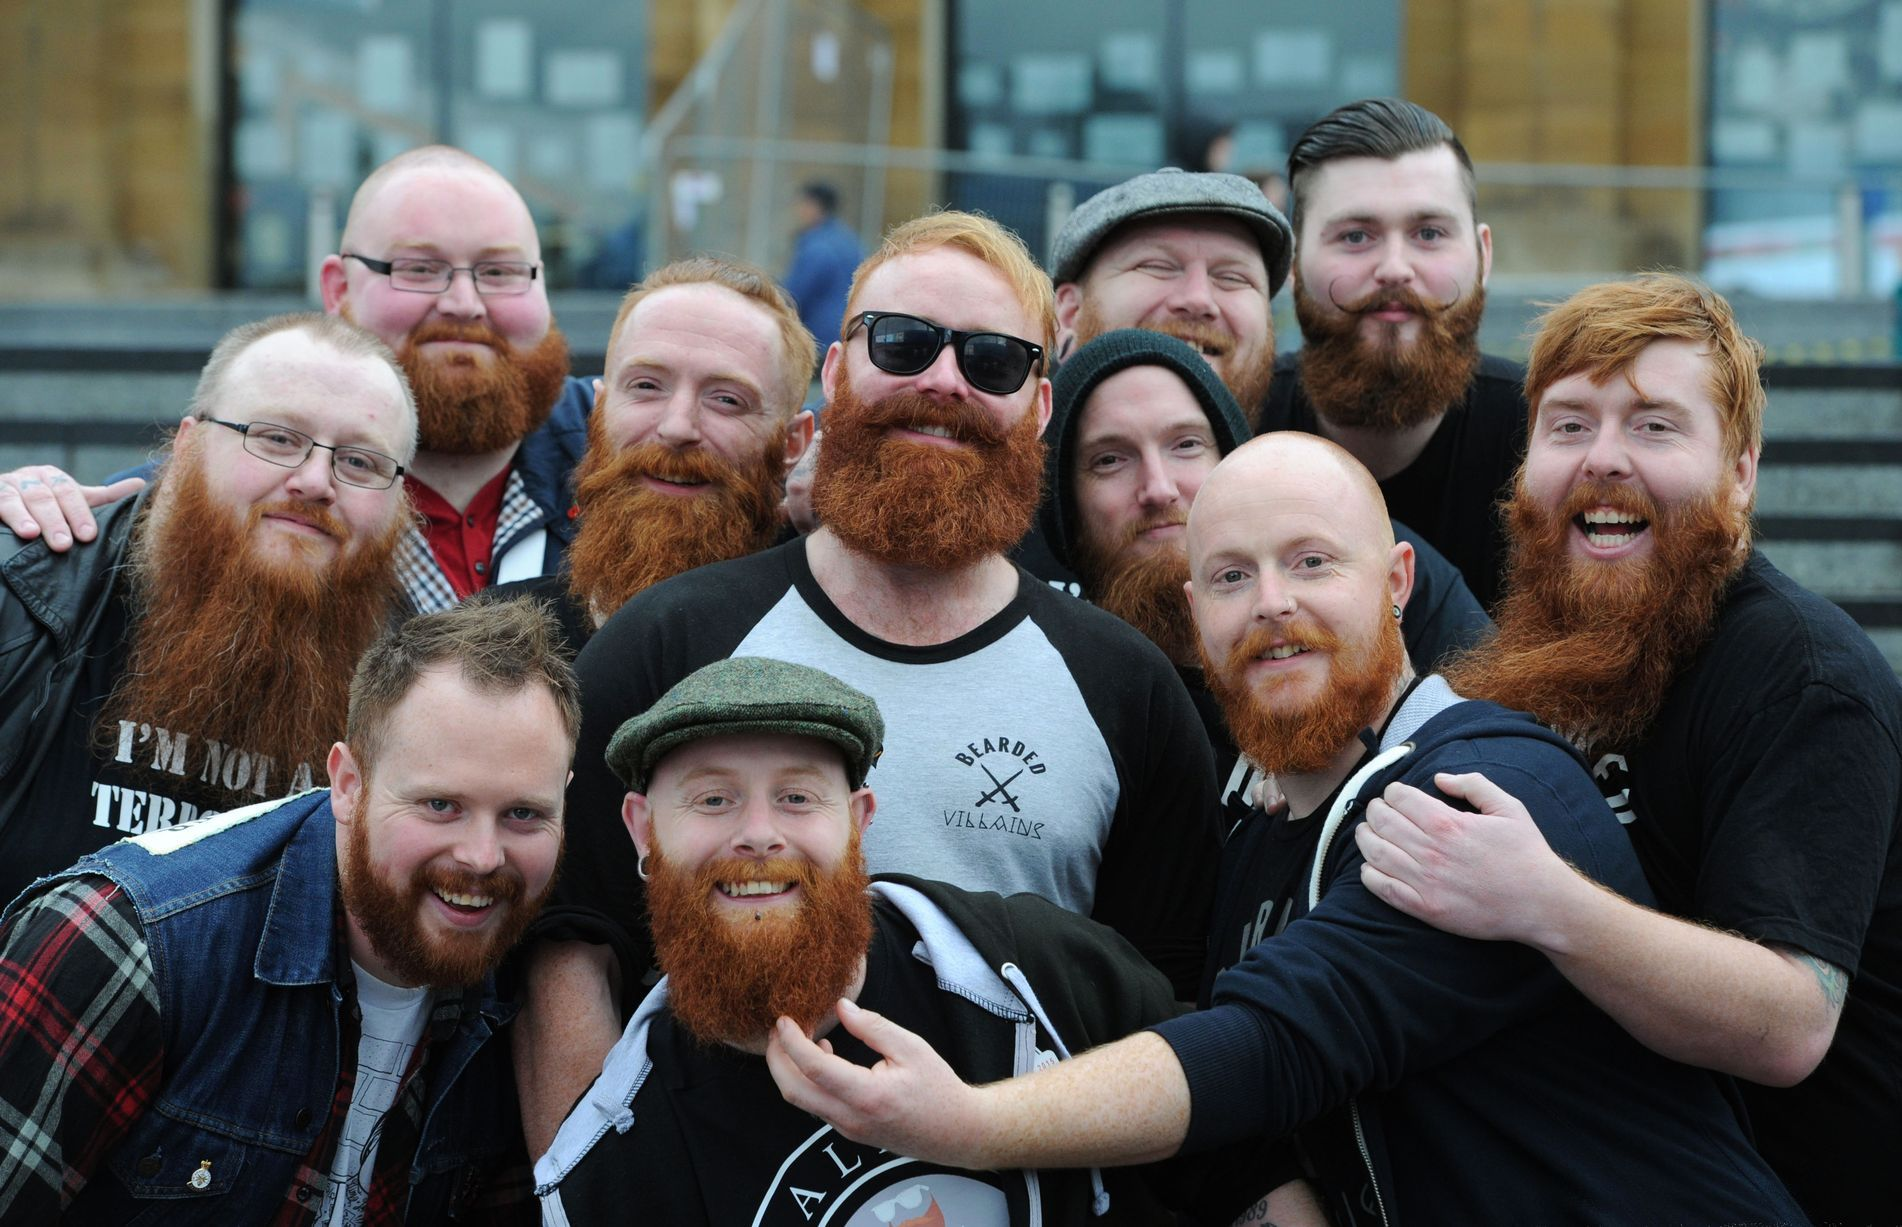 Many men with beards